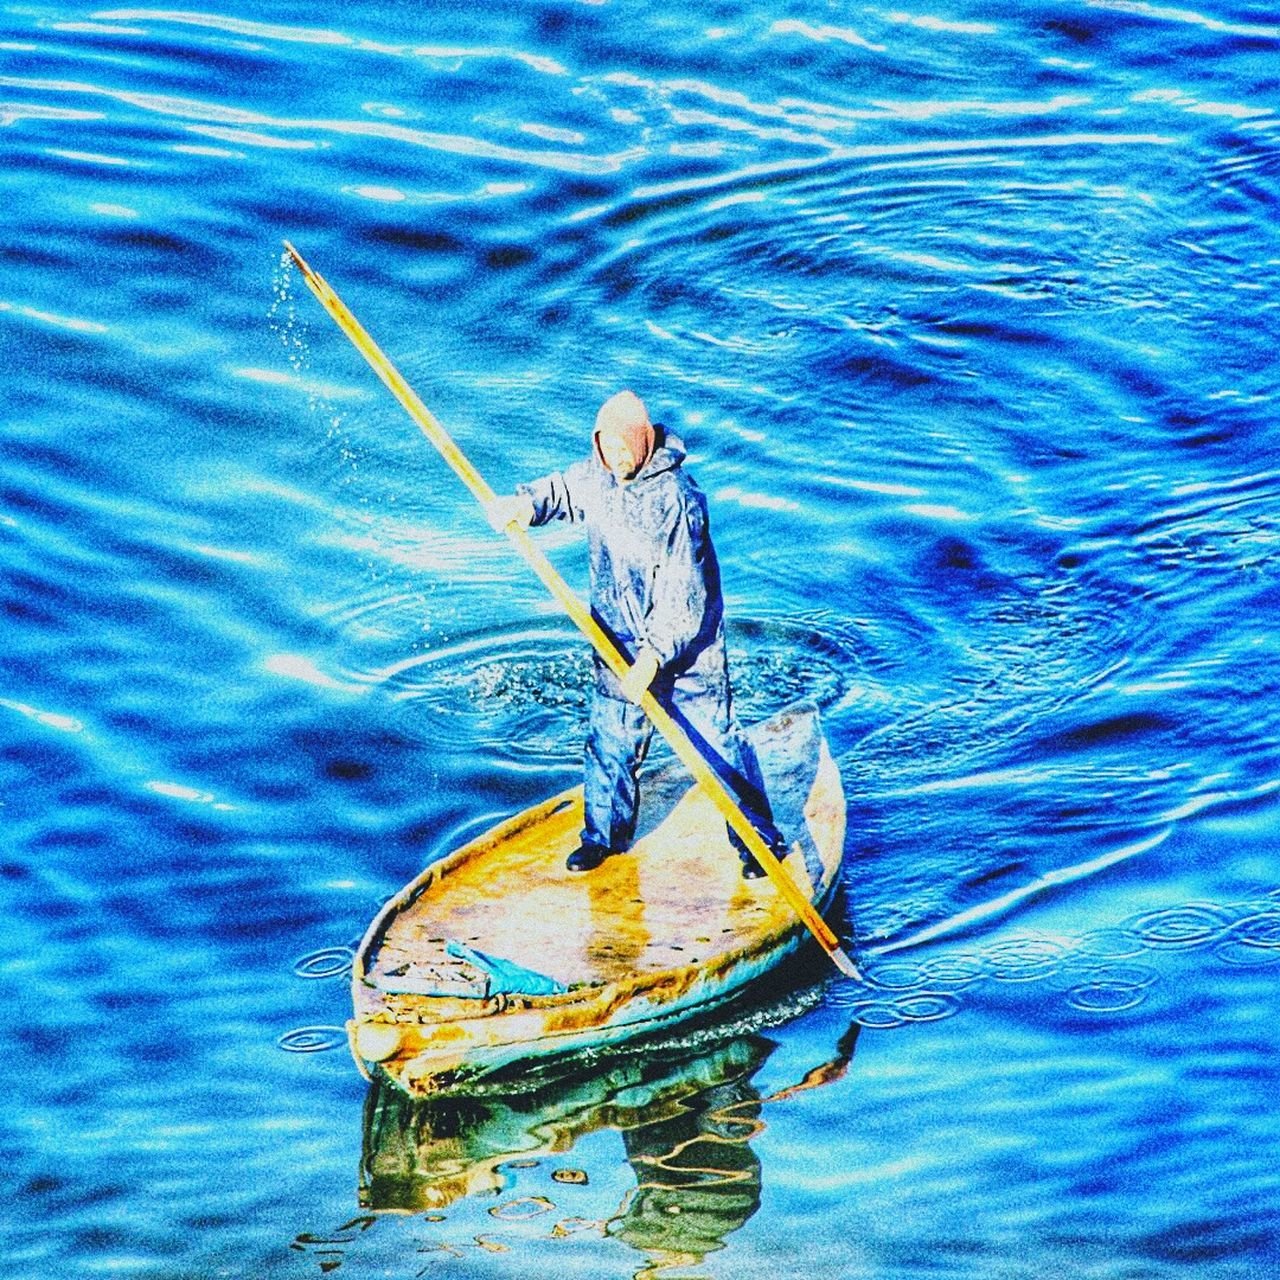 water, blue, day, outdoors, nature, one person, animal themes, people